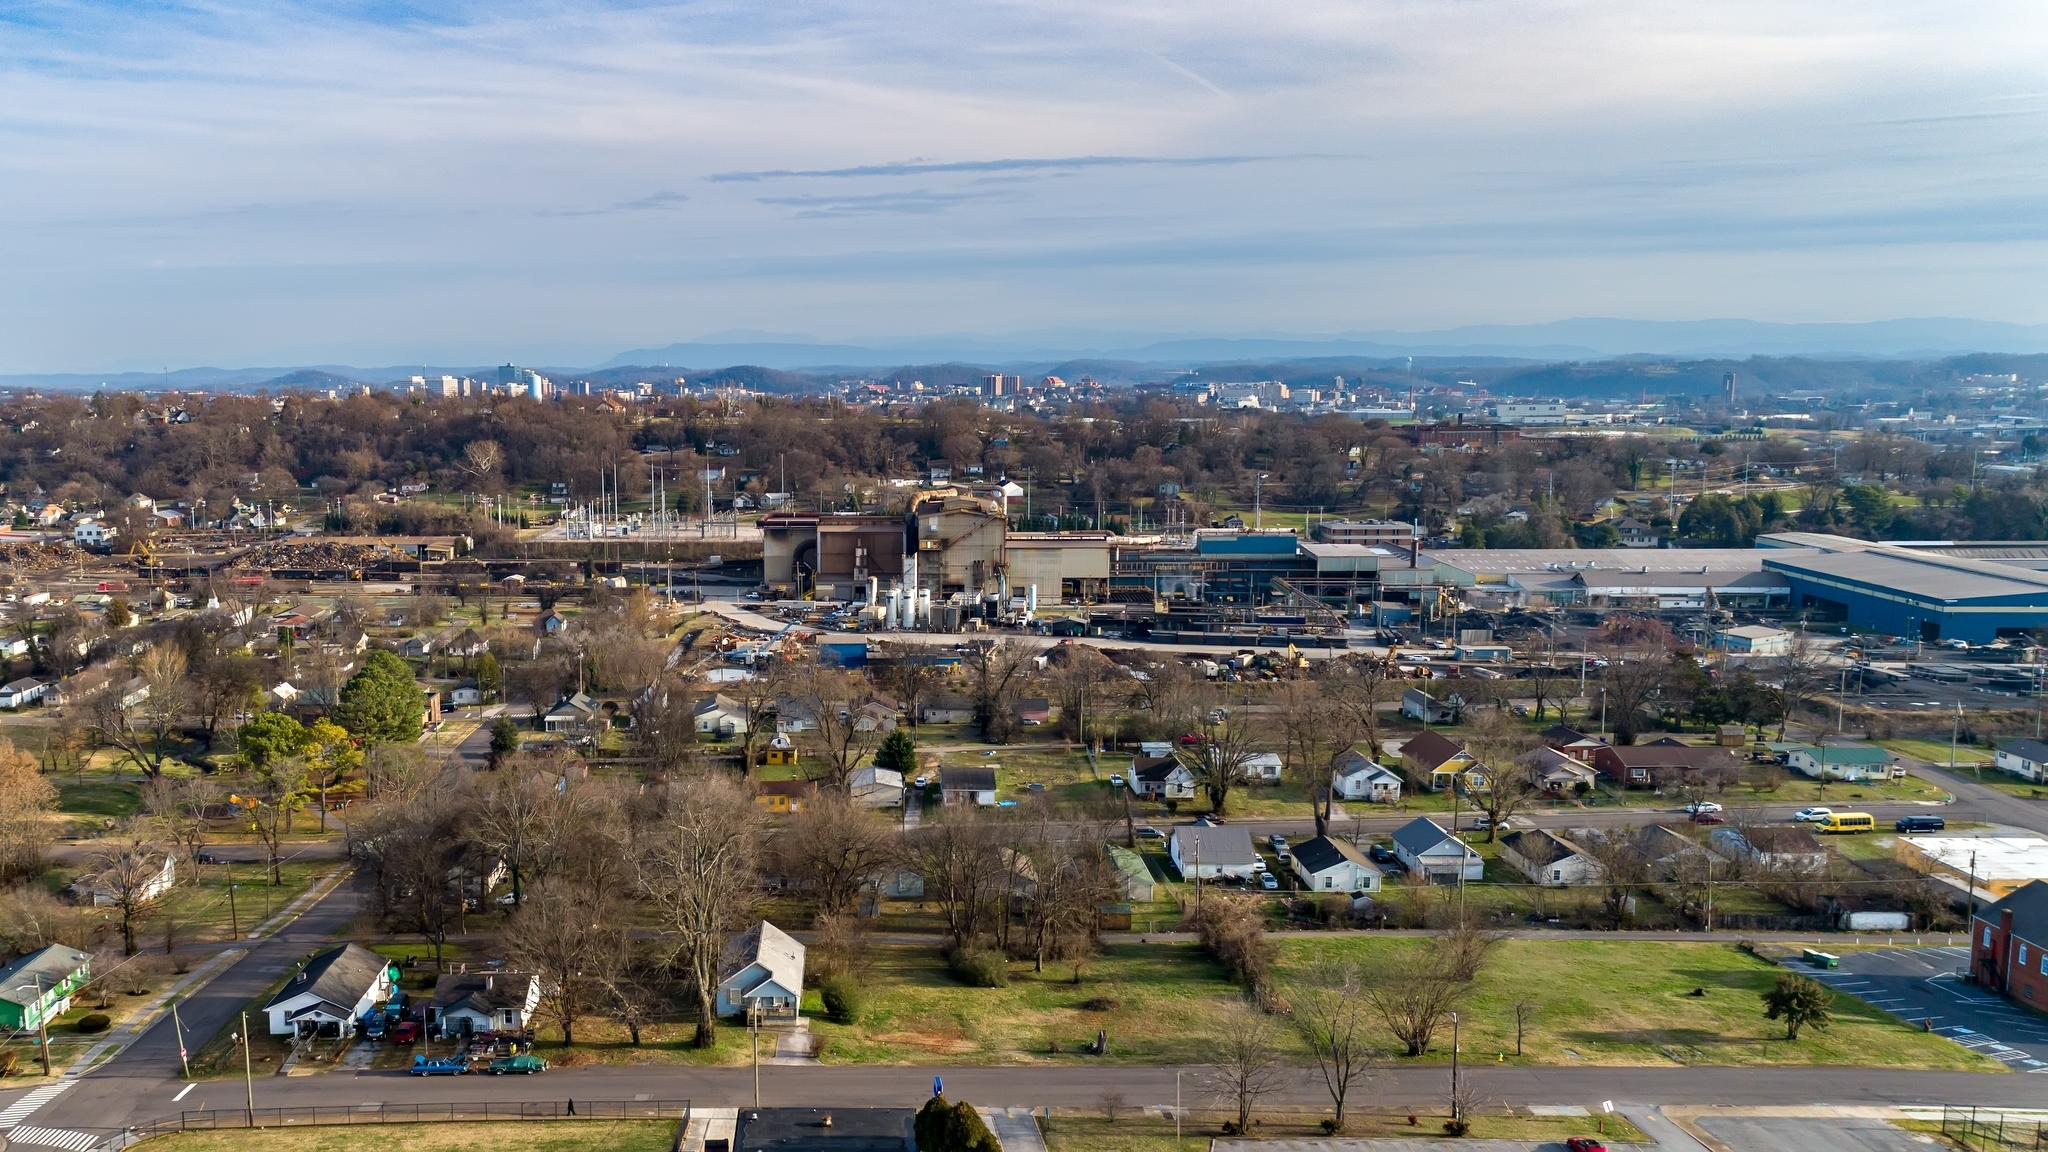 008 knoxville aerial photography.jpg